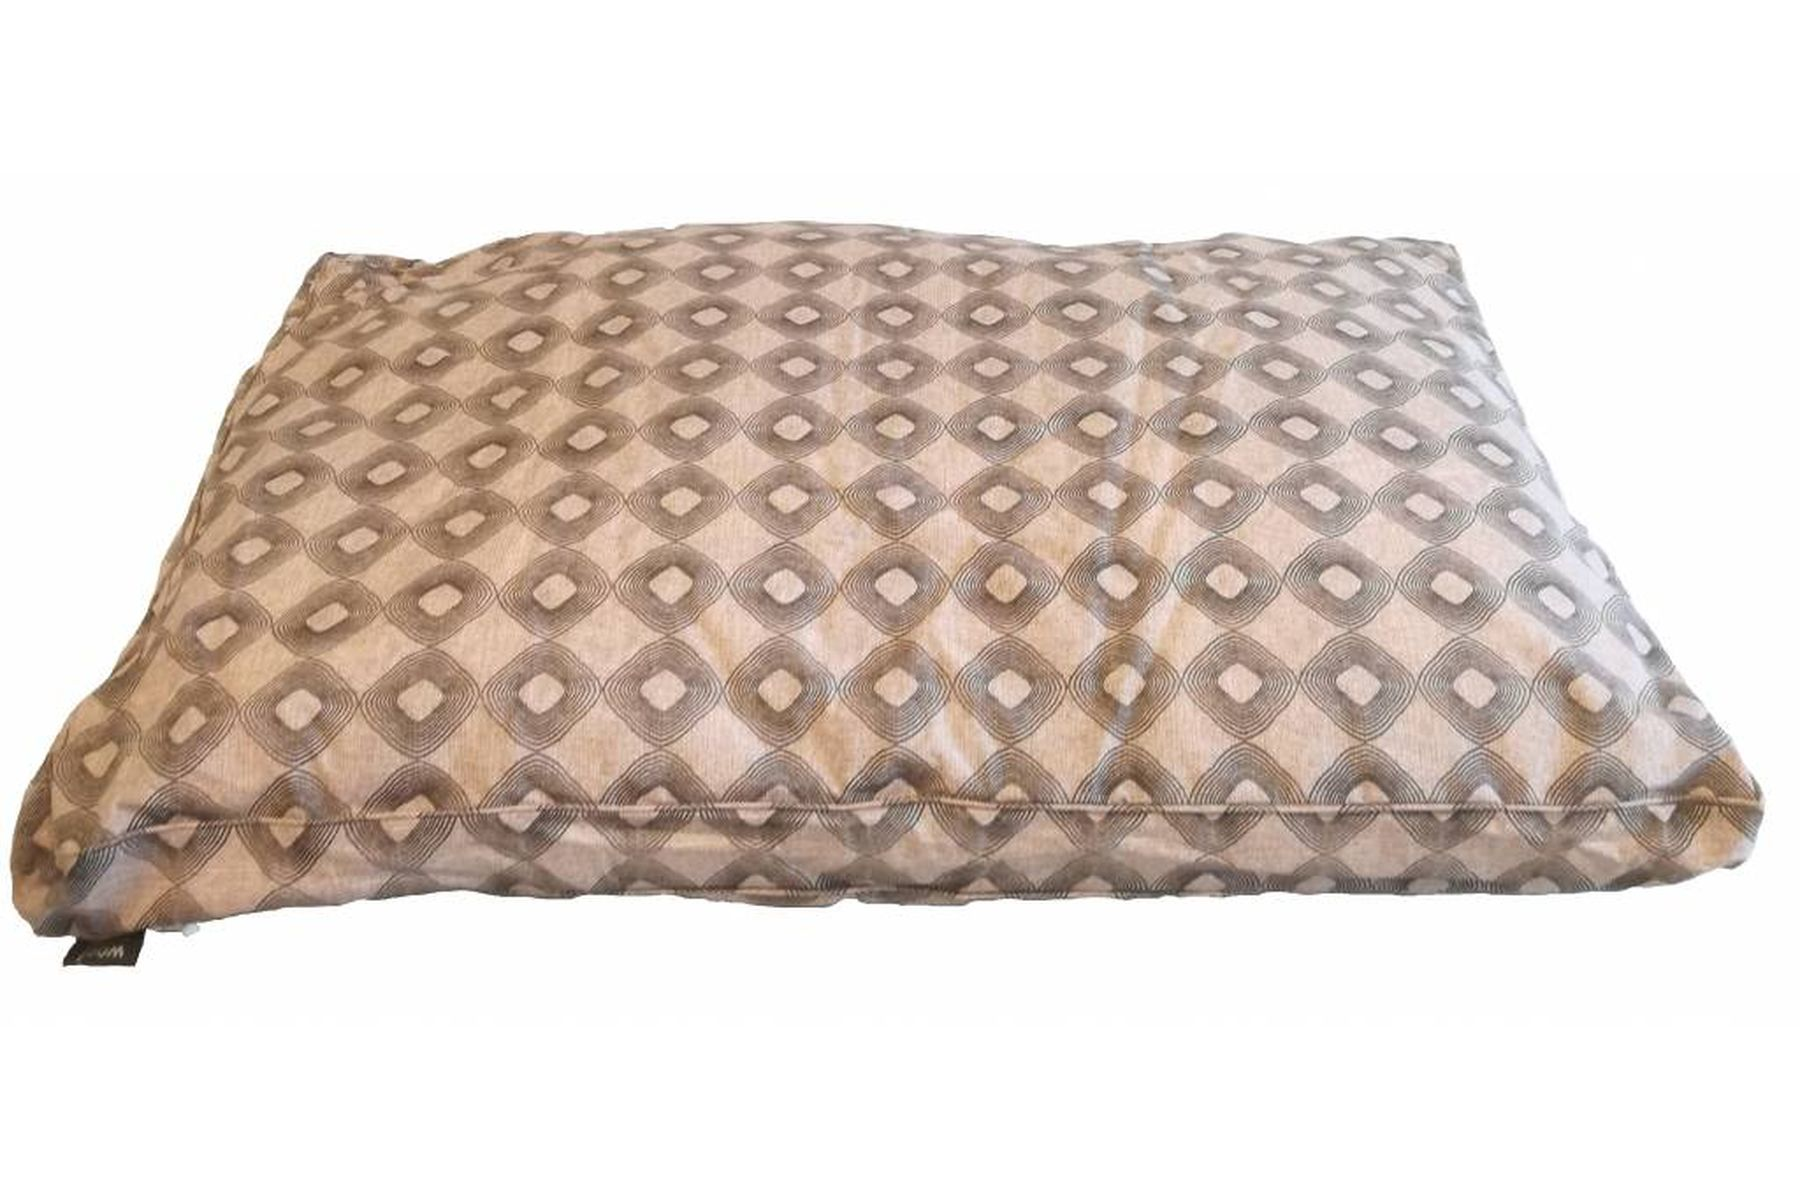 Woef Woef Hondenkussen Lounge Luxe Rondo taupe